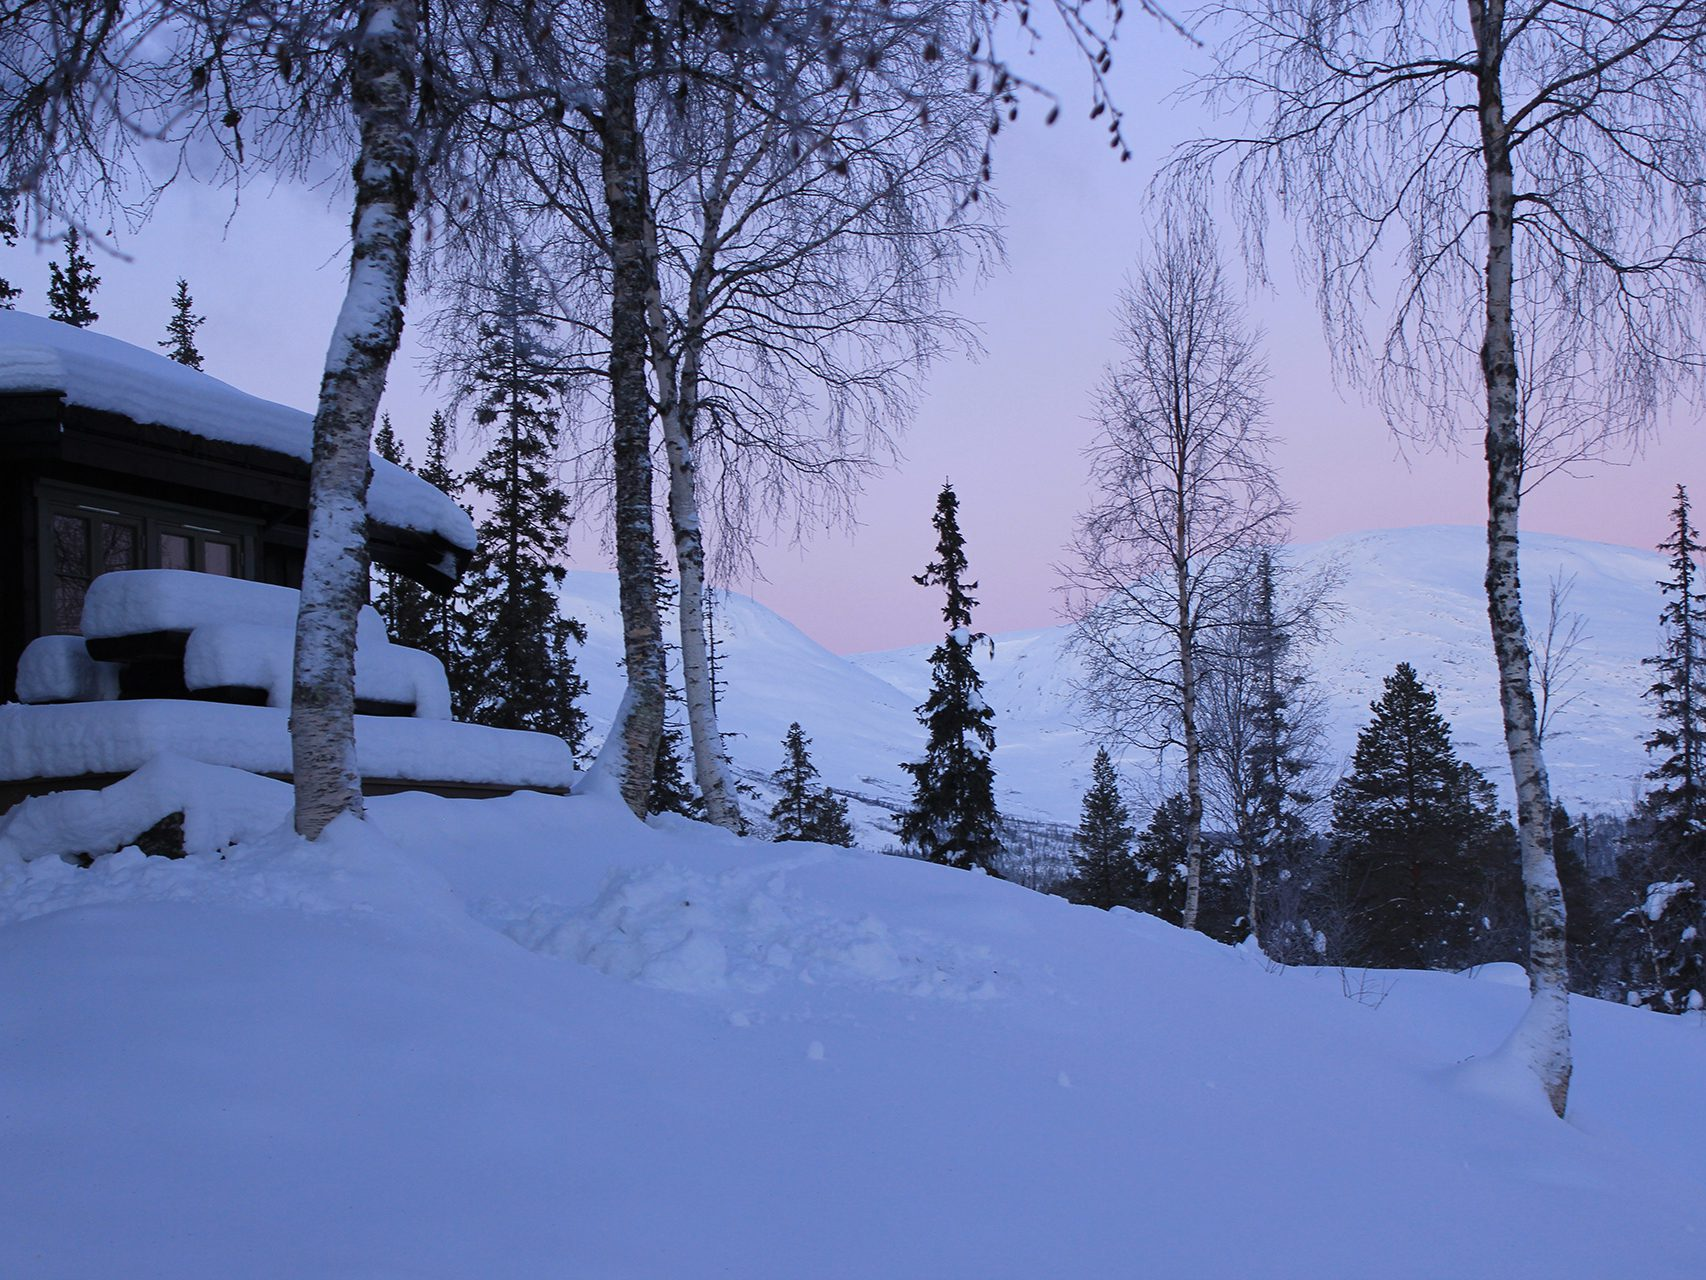 Picture of the outside of a cabin and lots of snow